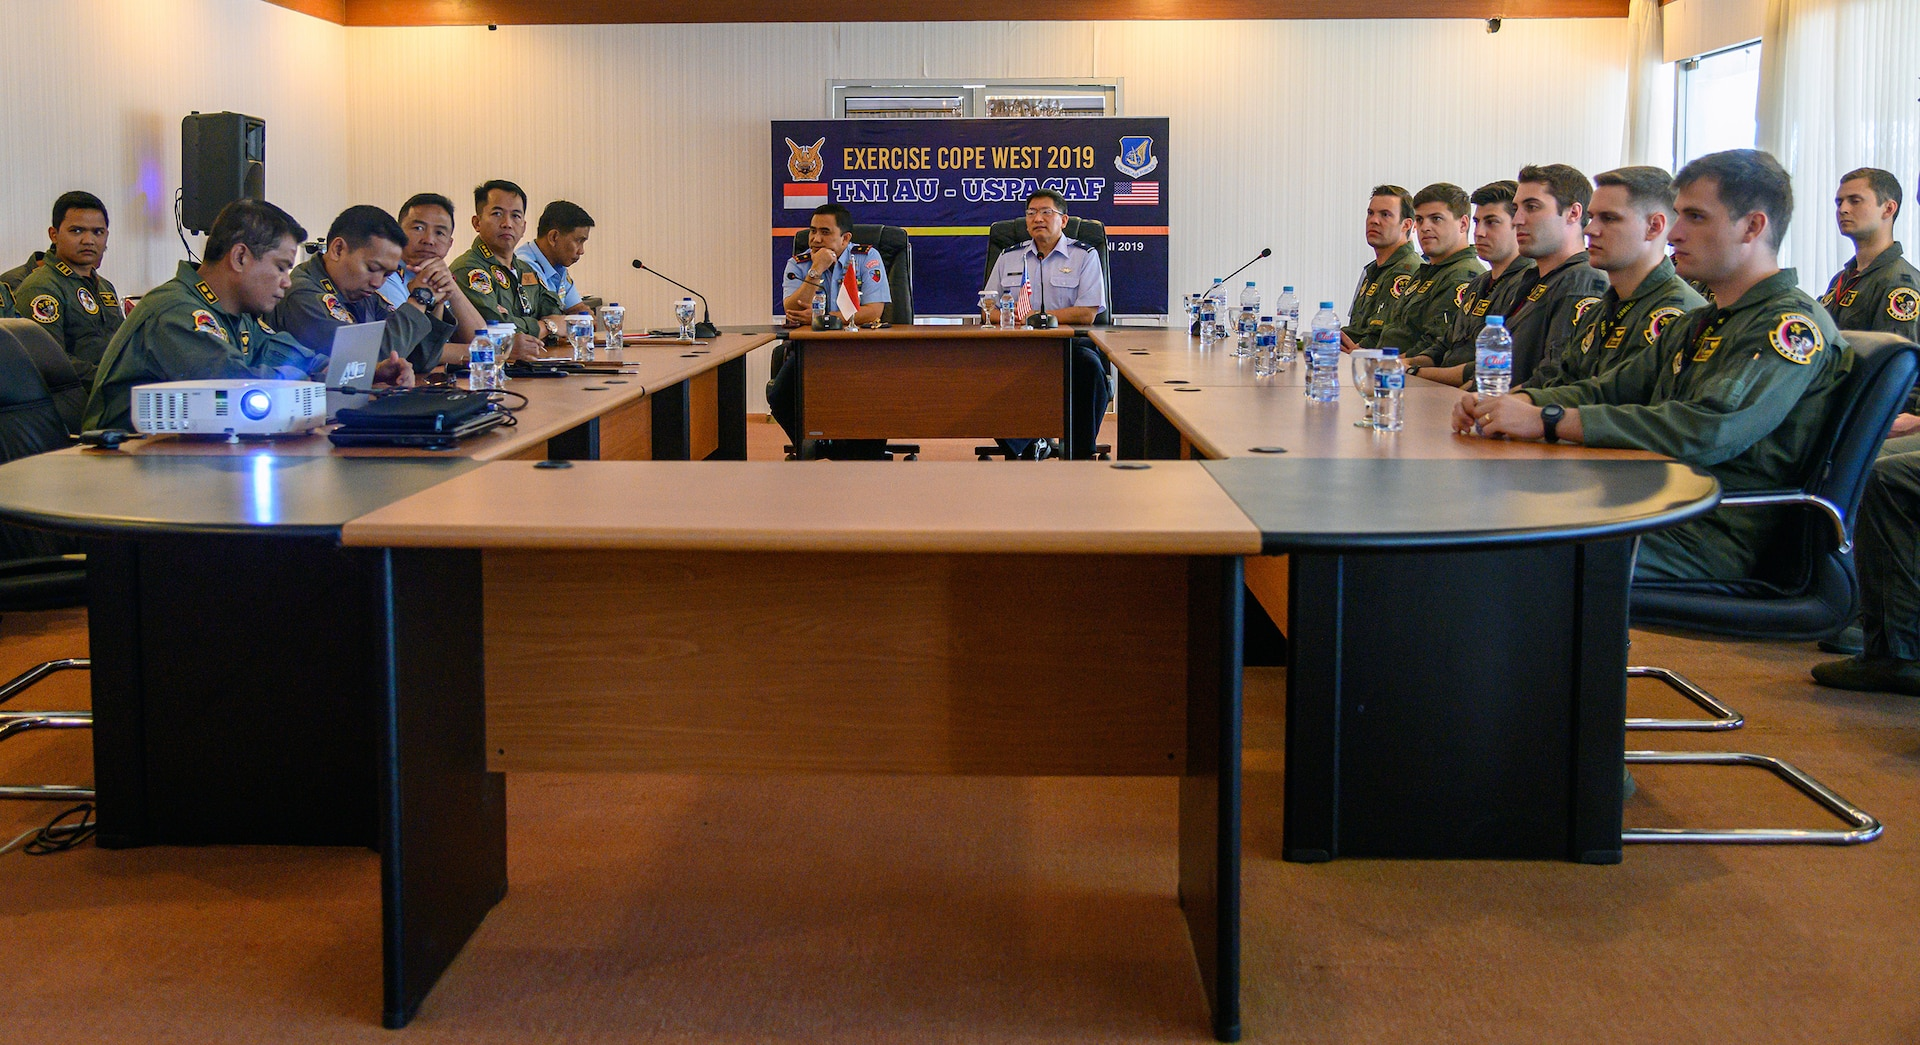 U.S., Indonesian Air Forces Wrap Up Cope West 19